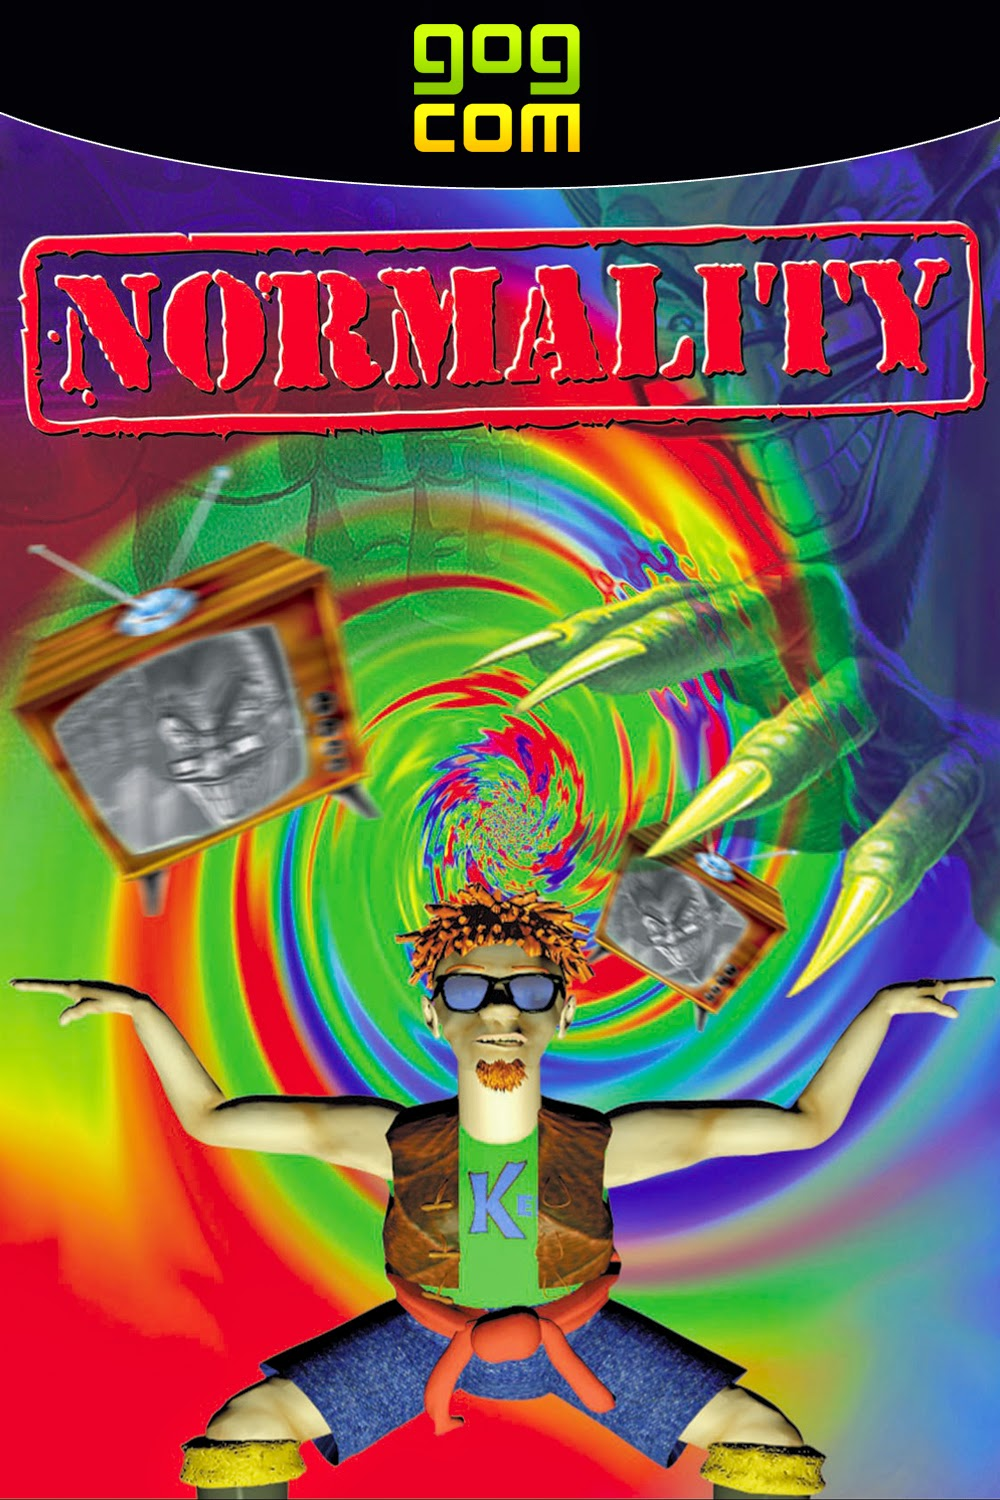 http://www.gog.com/game/normality